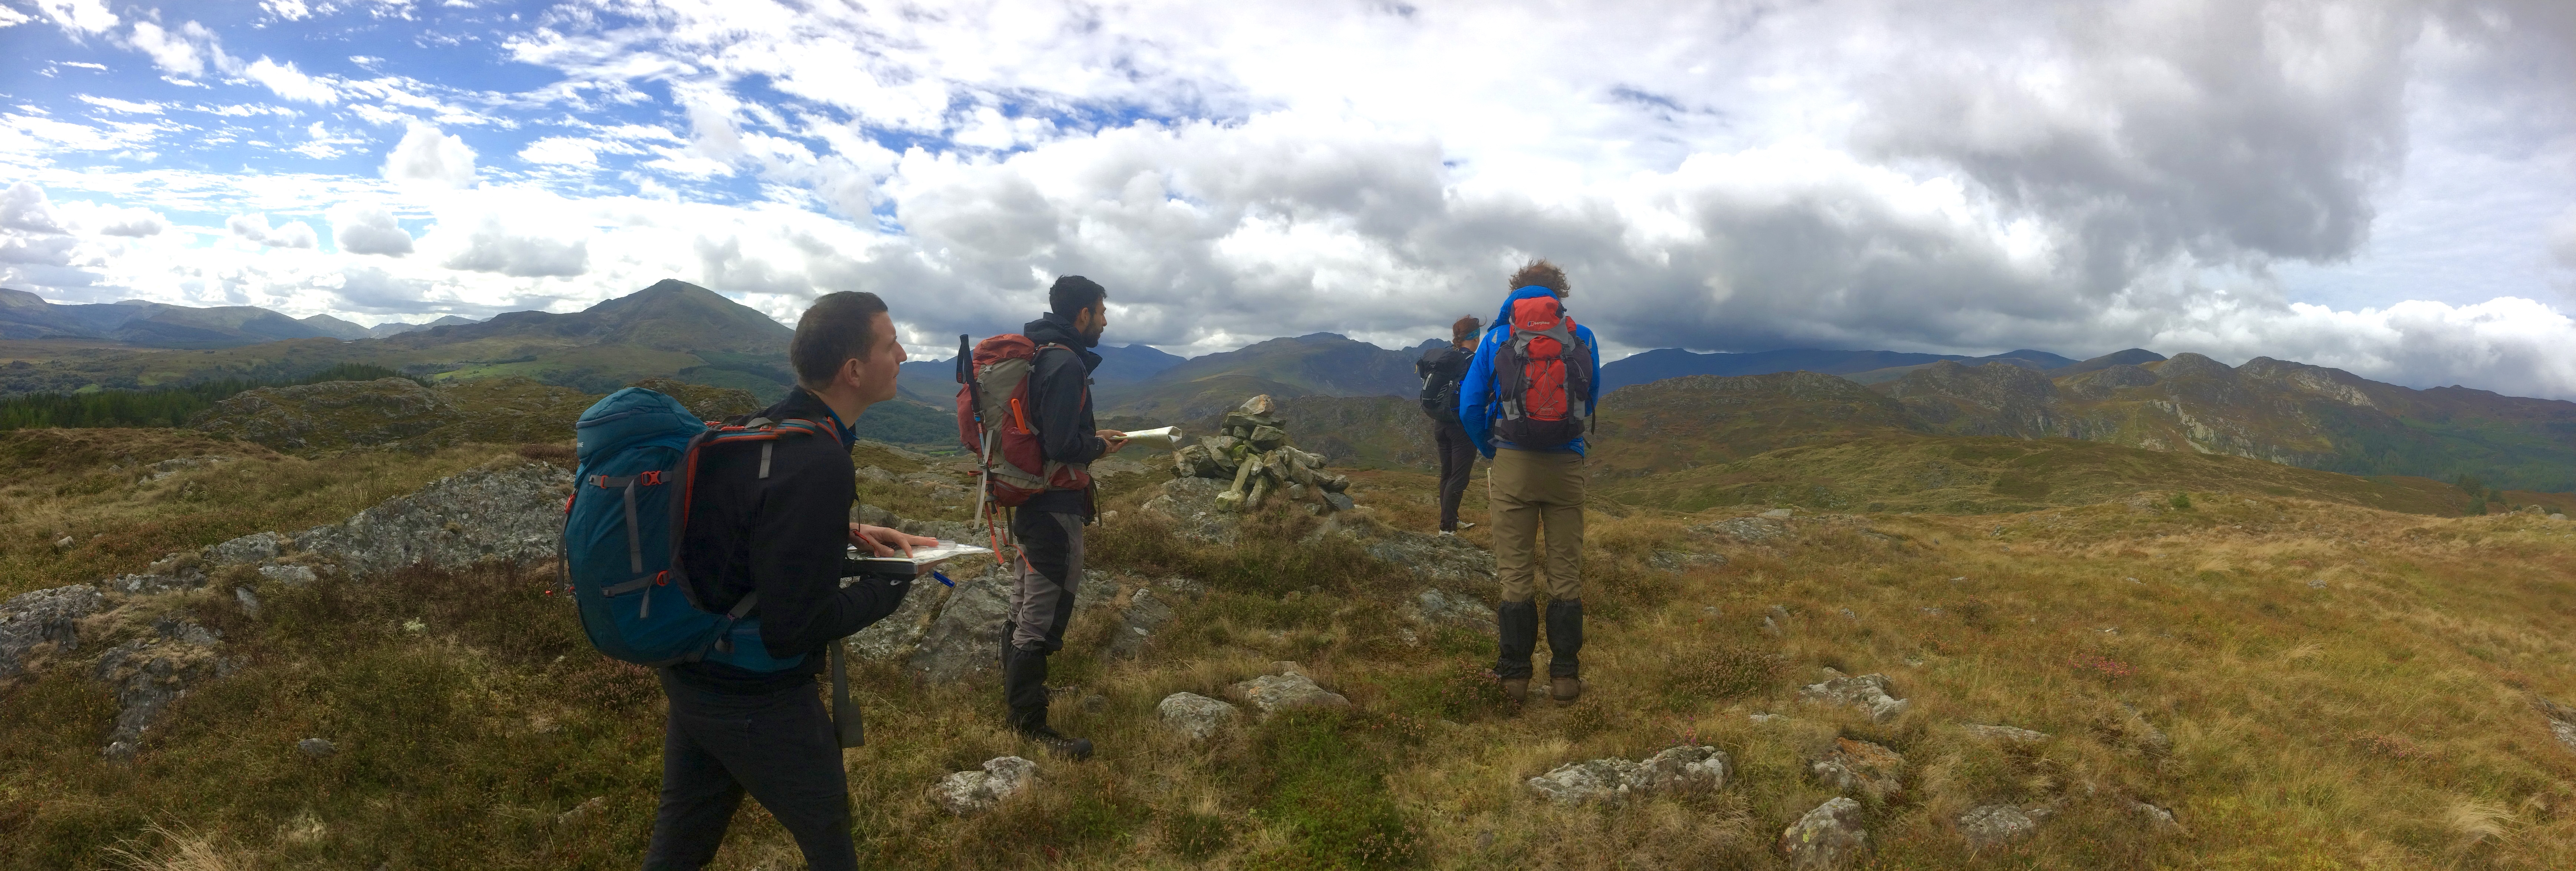 Hillwalkers in Snowdonia with maps and compasses using navigation skills